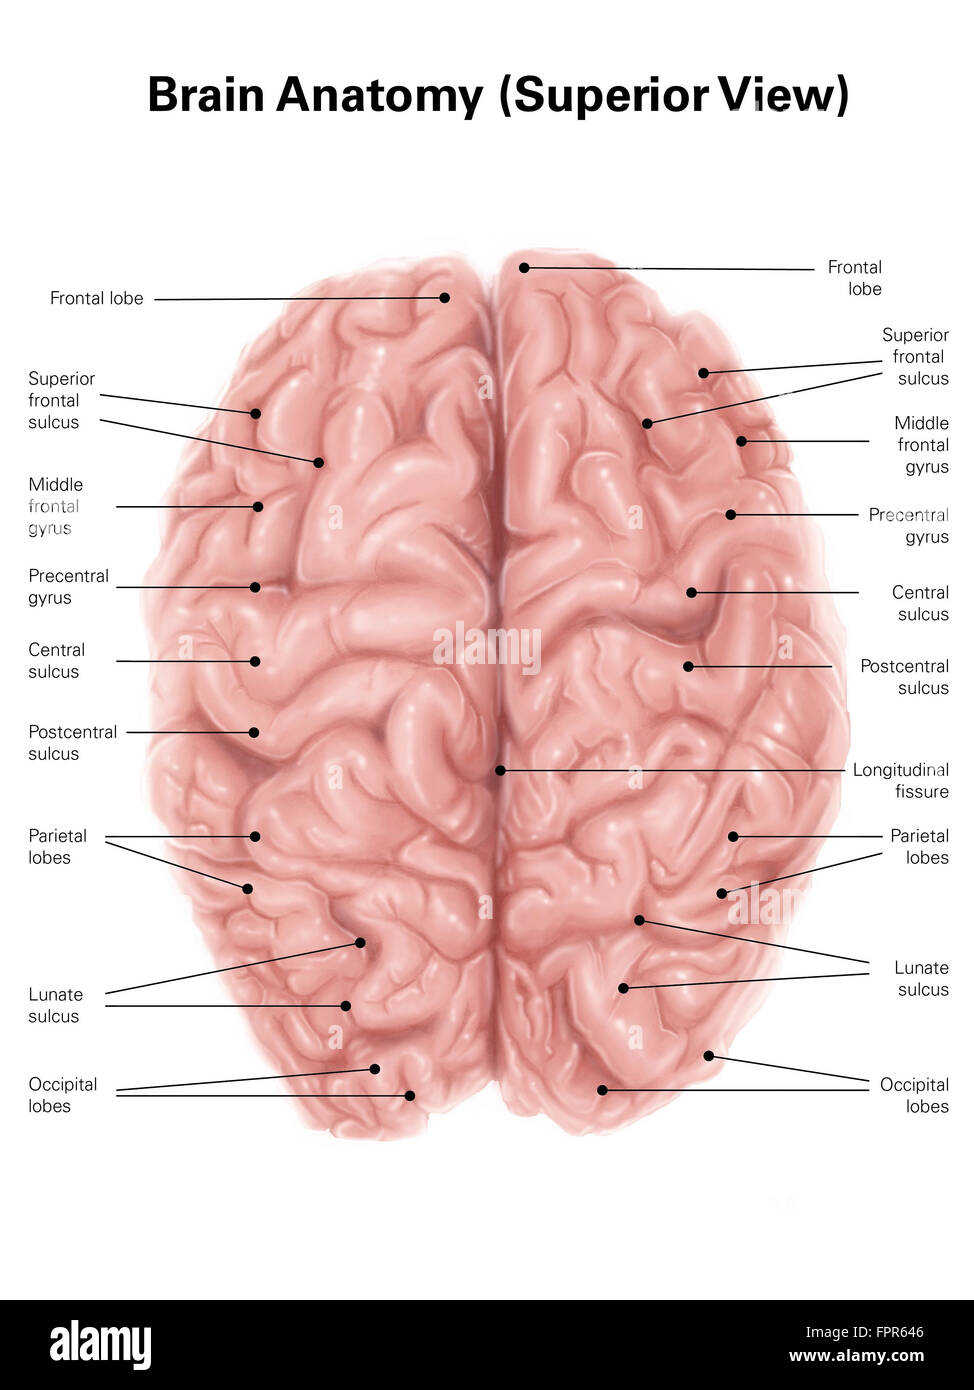 Human Brain Diagram Superior View - Trusted Wiring Diagram •